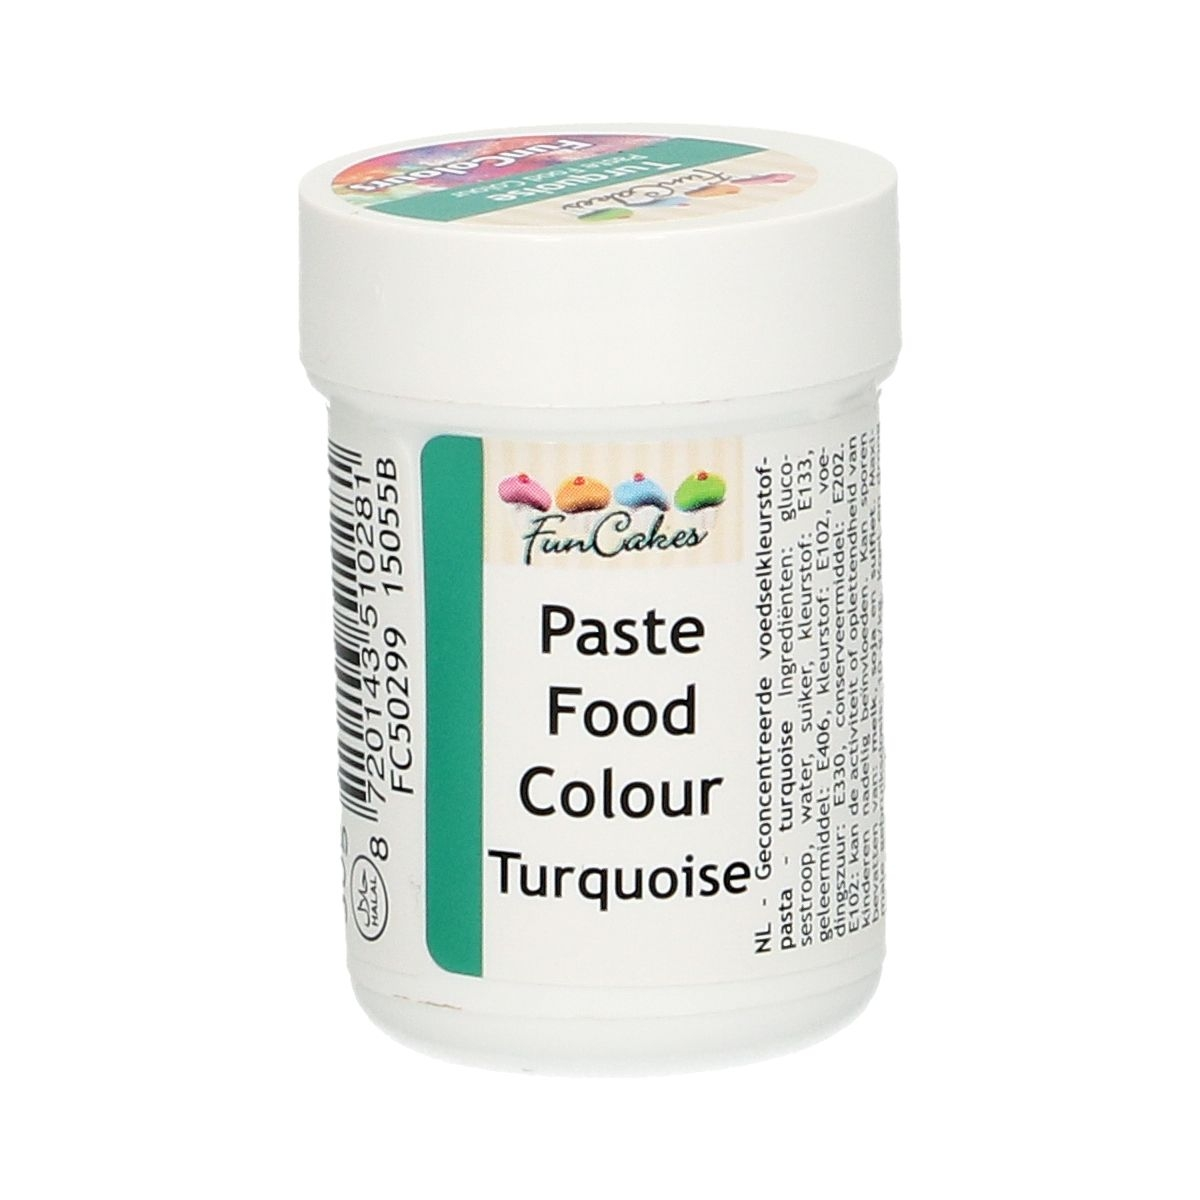 /f/u/funcakes_funcolours_paste_food_colour_turquoise.jpg